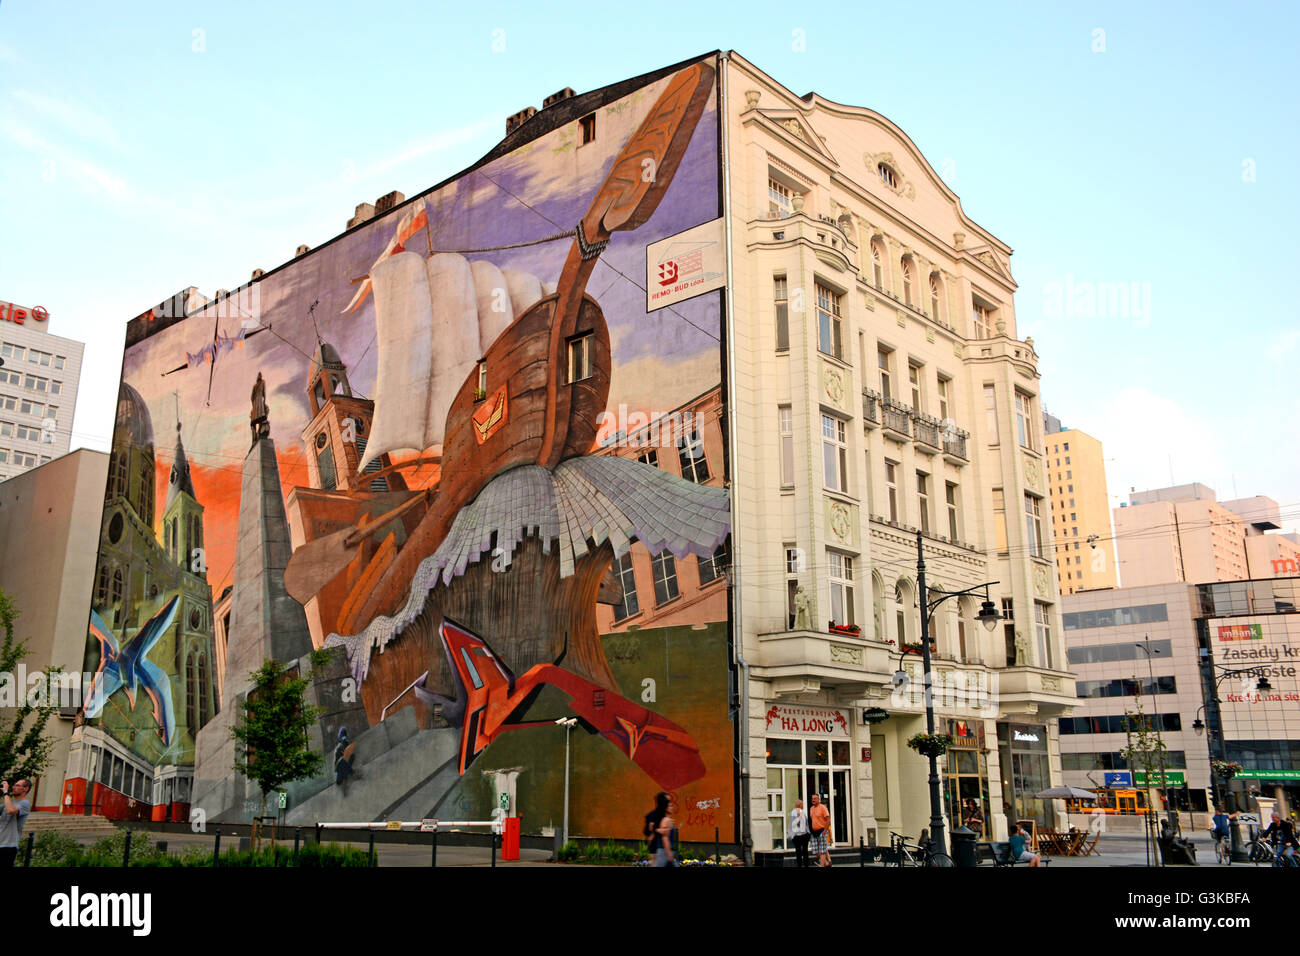 Mural frresco on the wall of a building lodz poland stock for Mural on building